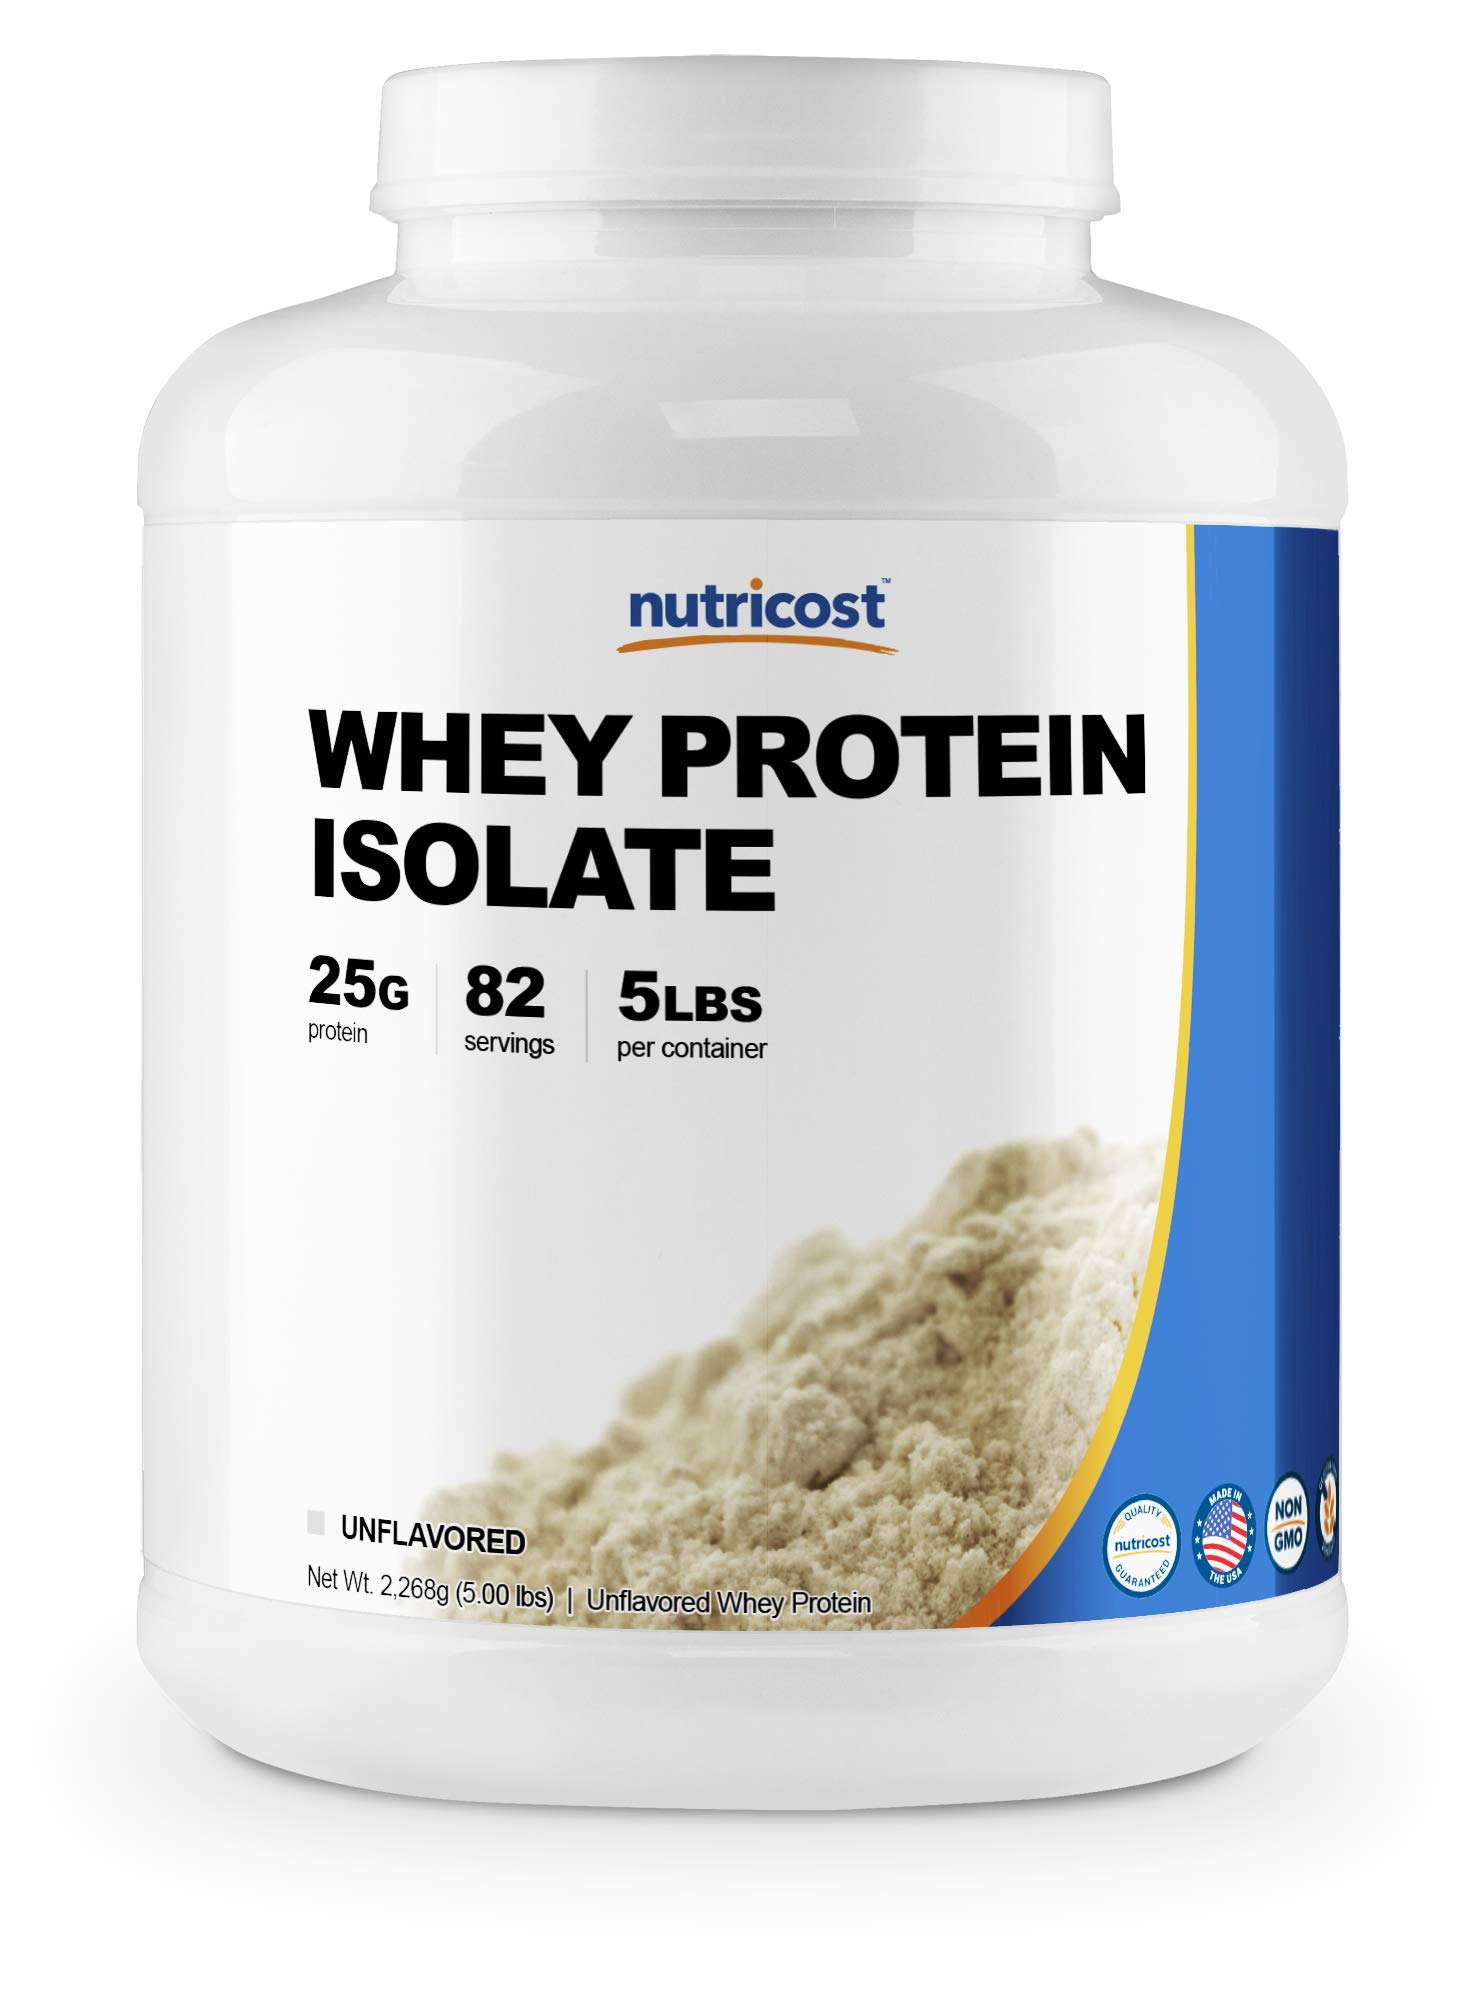 Nutricost Whey Protein Isolate (Unflavored) 5LBS by Nutricost